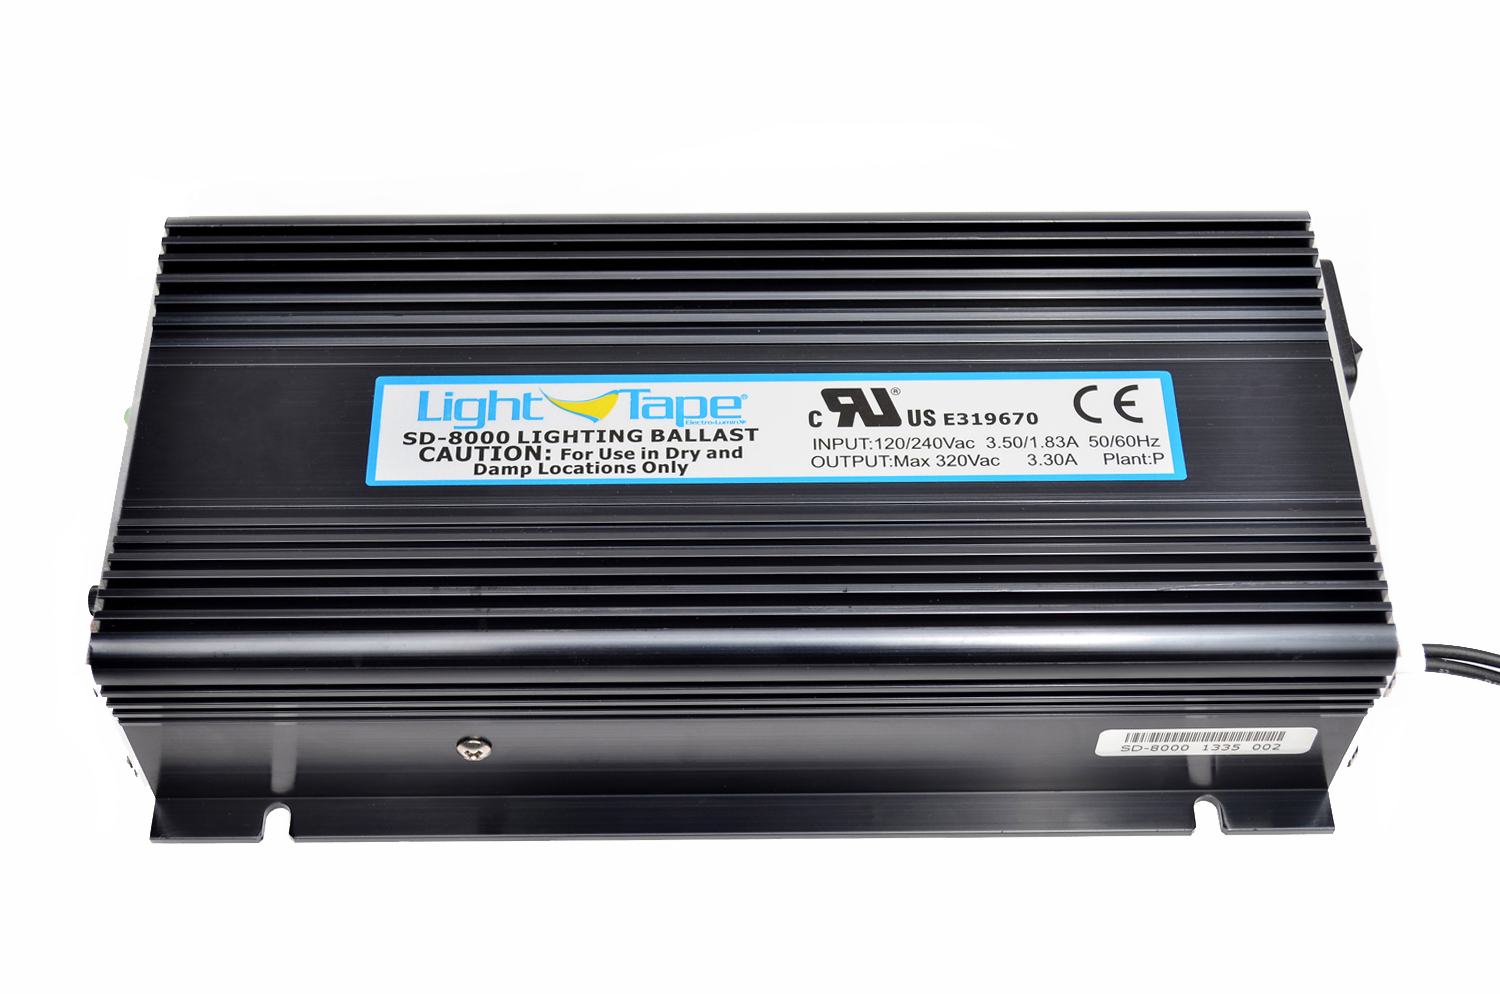 Model SD-8000  Illuminated Area:8000 sq. in. Input Current:800-4500 mA Input Voltage: 120 or 240 VAC Input Frequency: 50/60 Hz Output Voltage: 200-300 V Output Frequency: 500-680 Hz